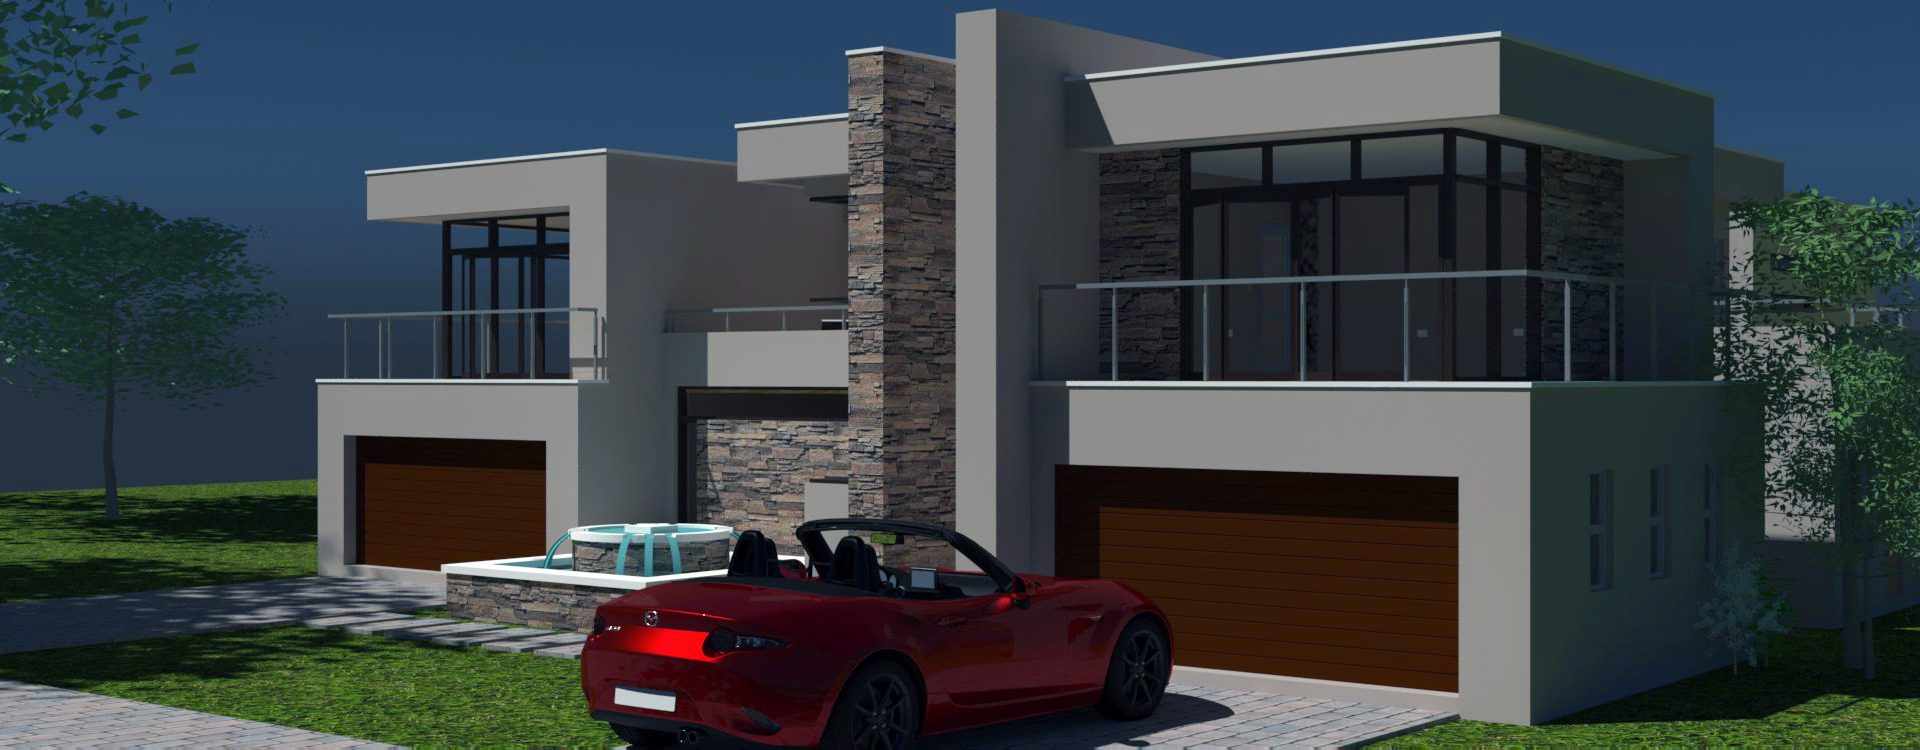 2 storey house design modern style house plan stunning house design house plans south africa 4